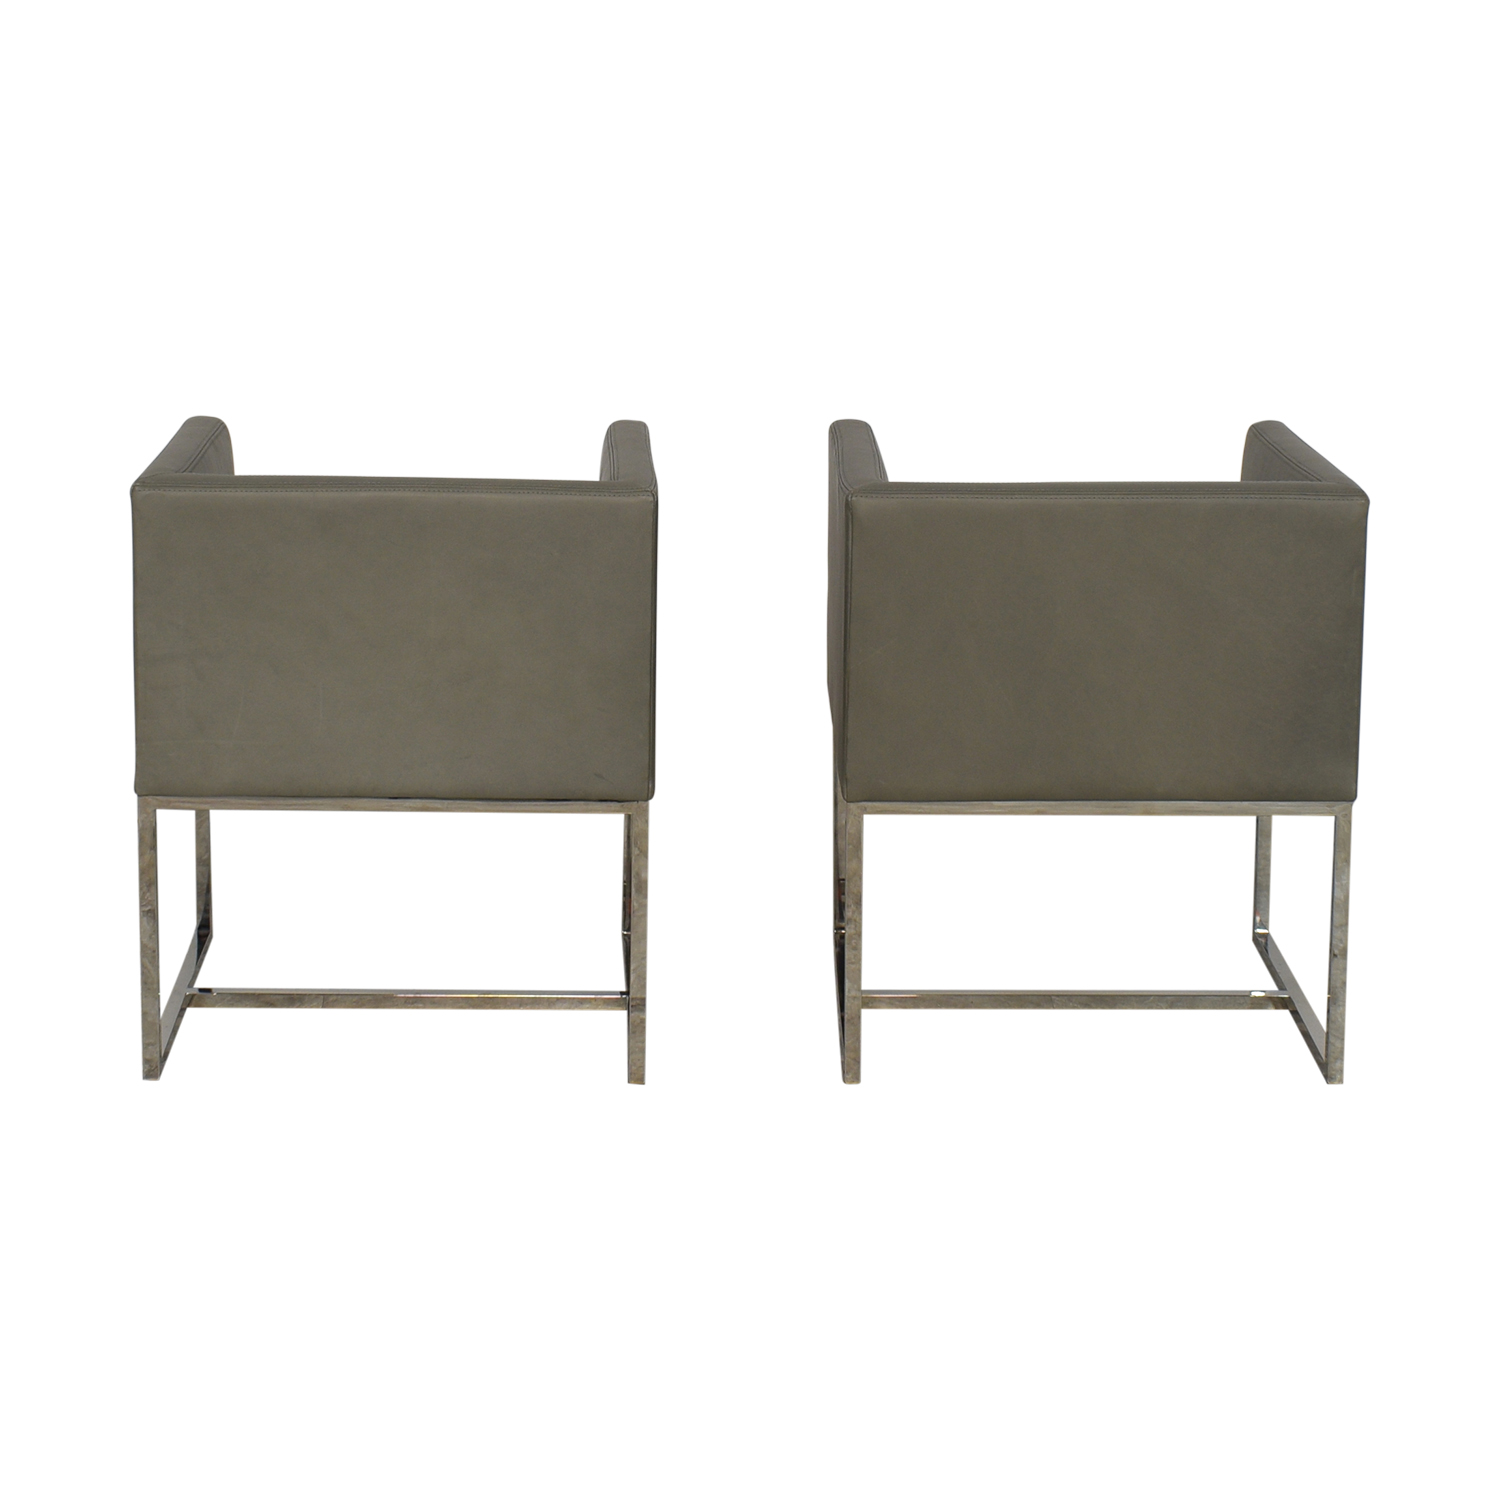 Restoration Hardware Restoration Hardware Emery Shelter Arm Chairs on sale